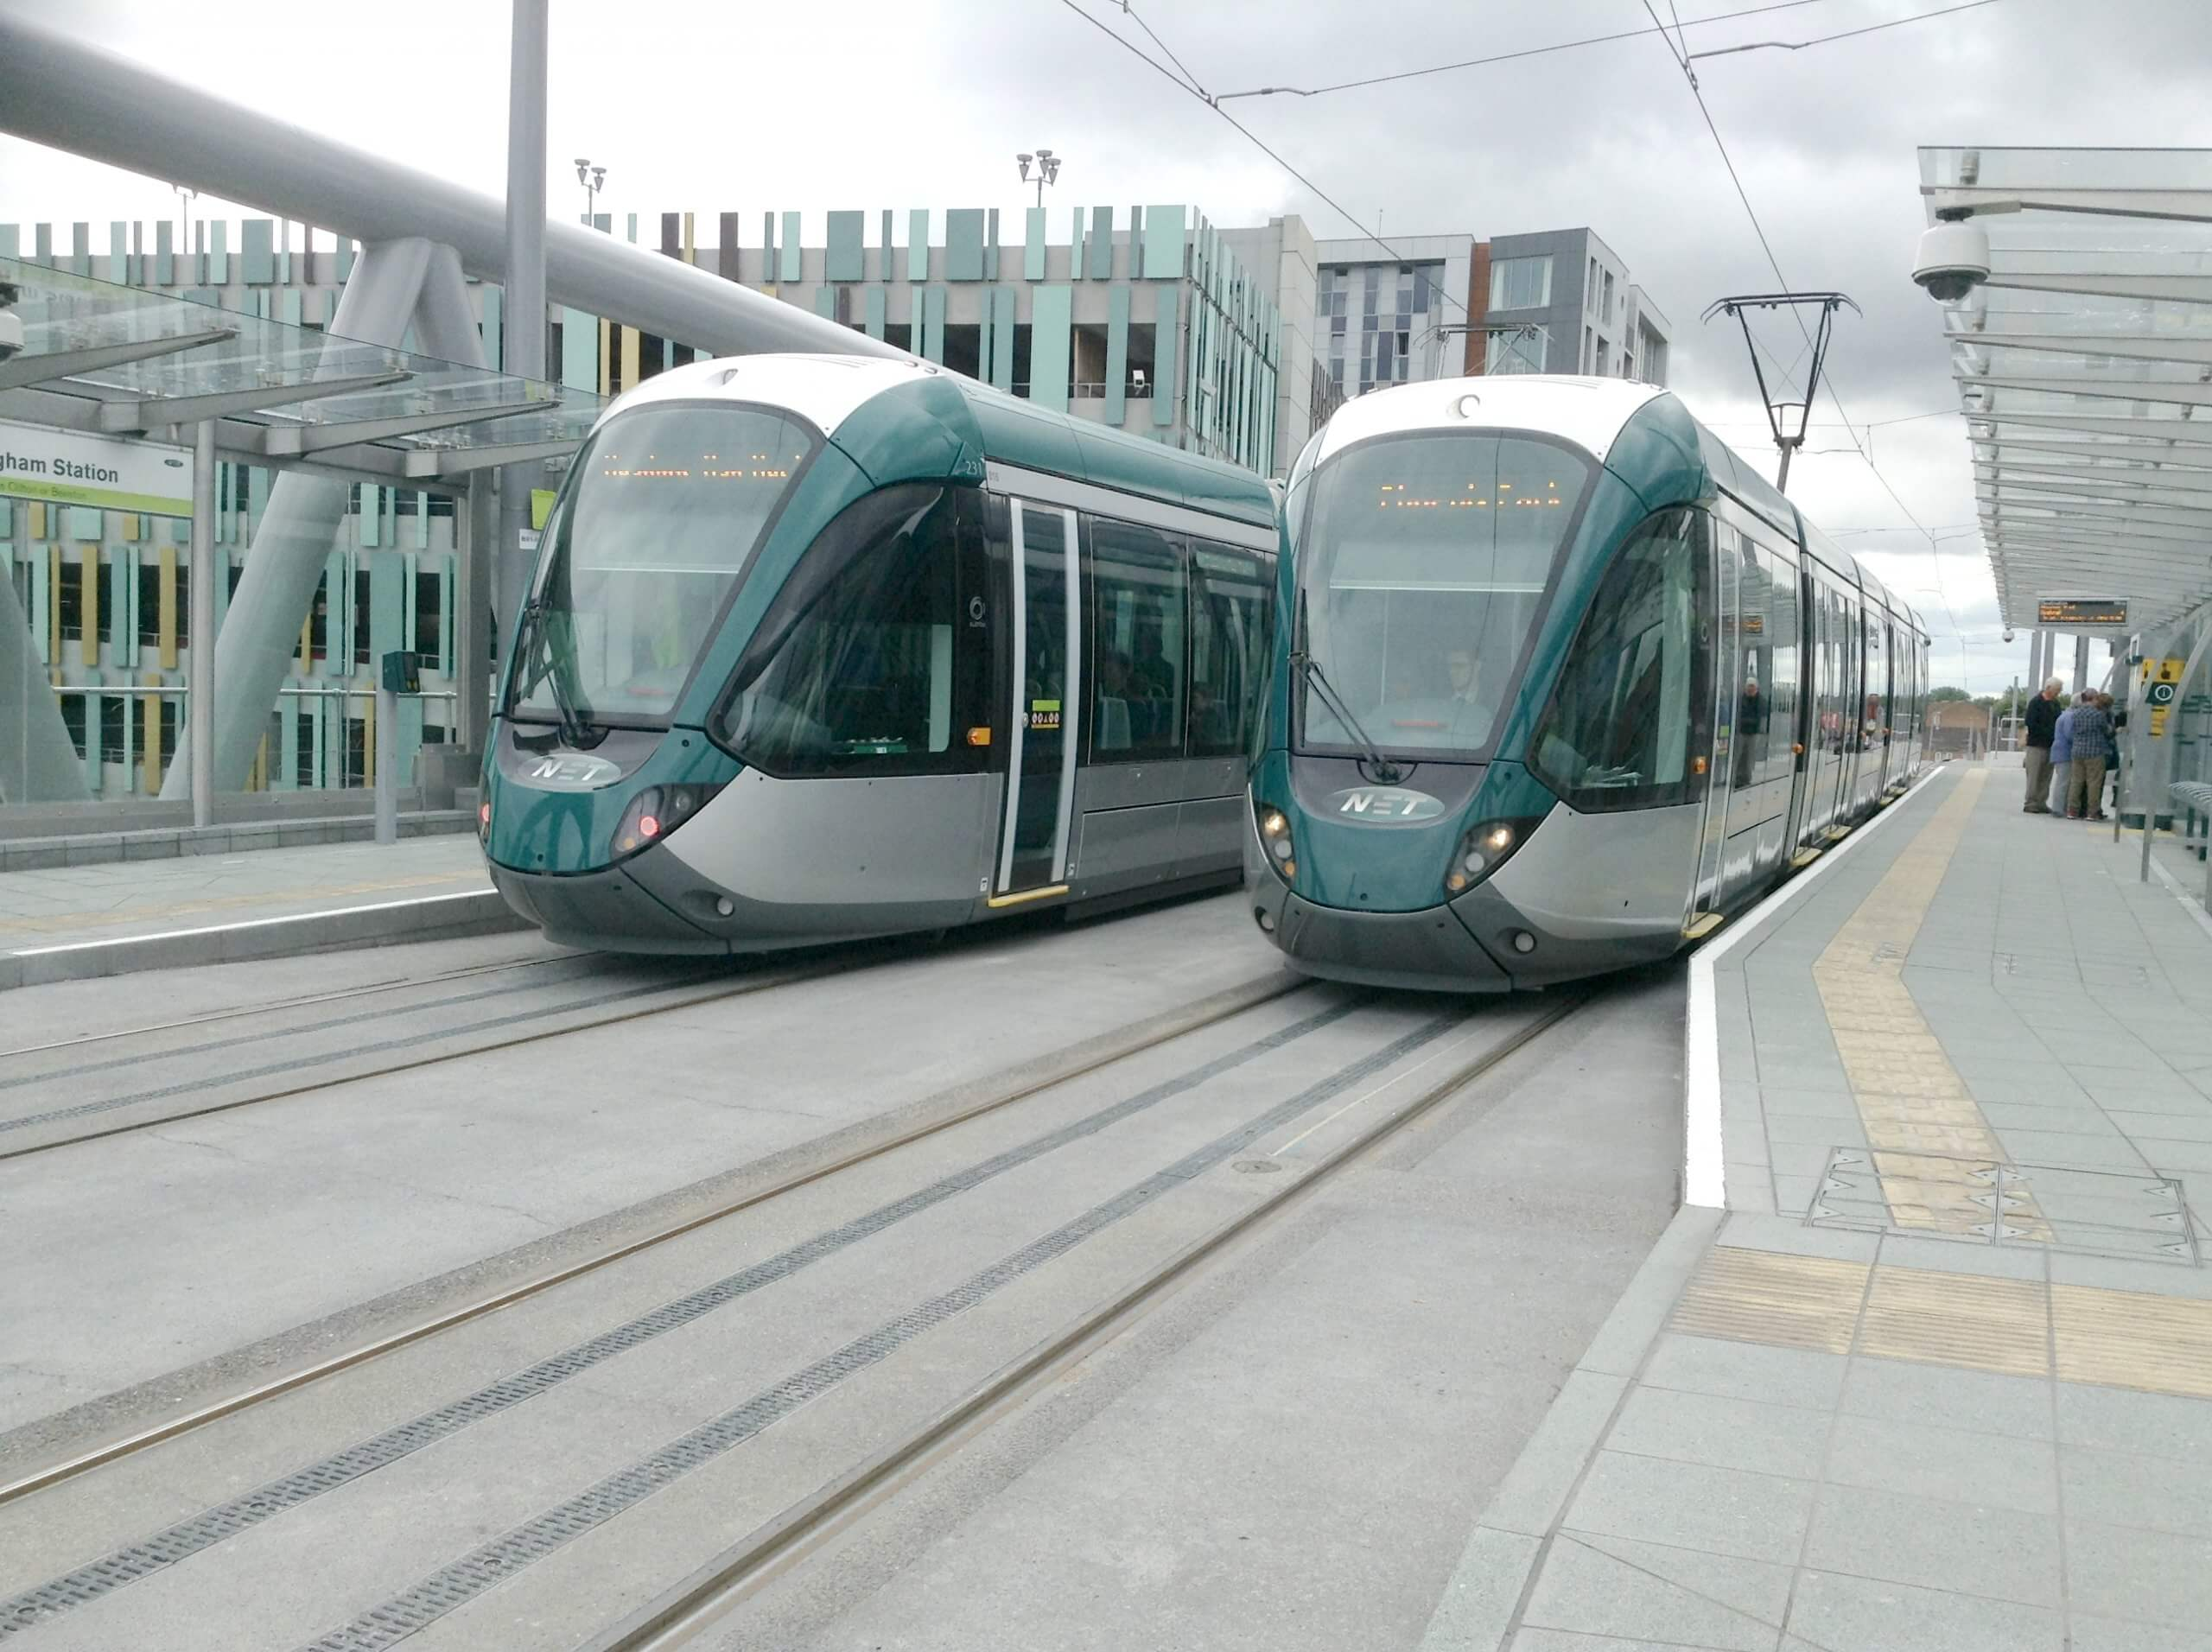 trams at the Station tram stop